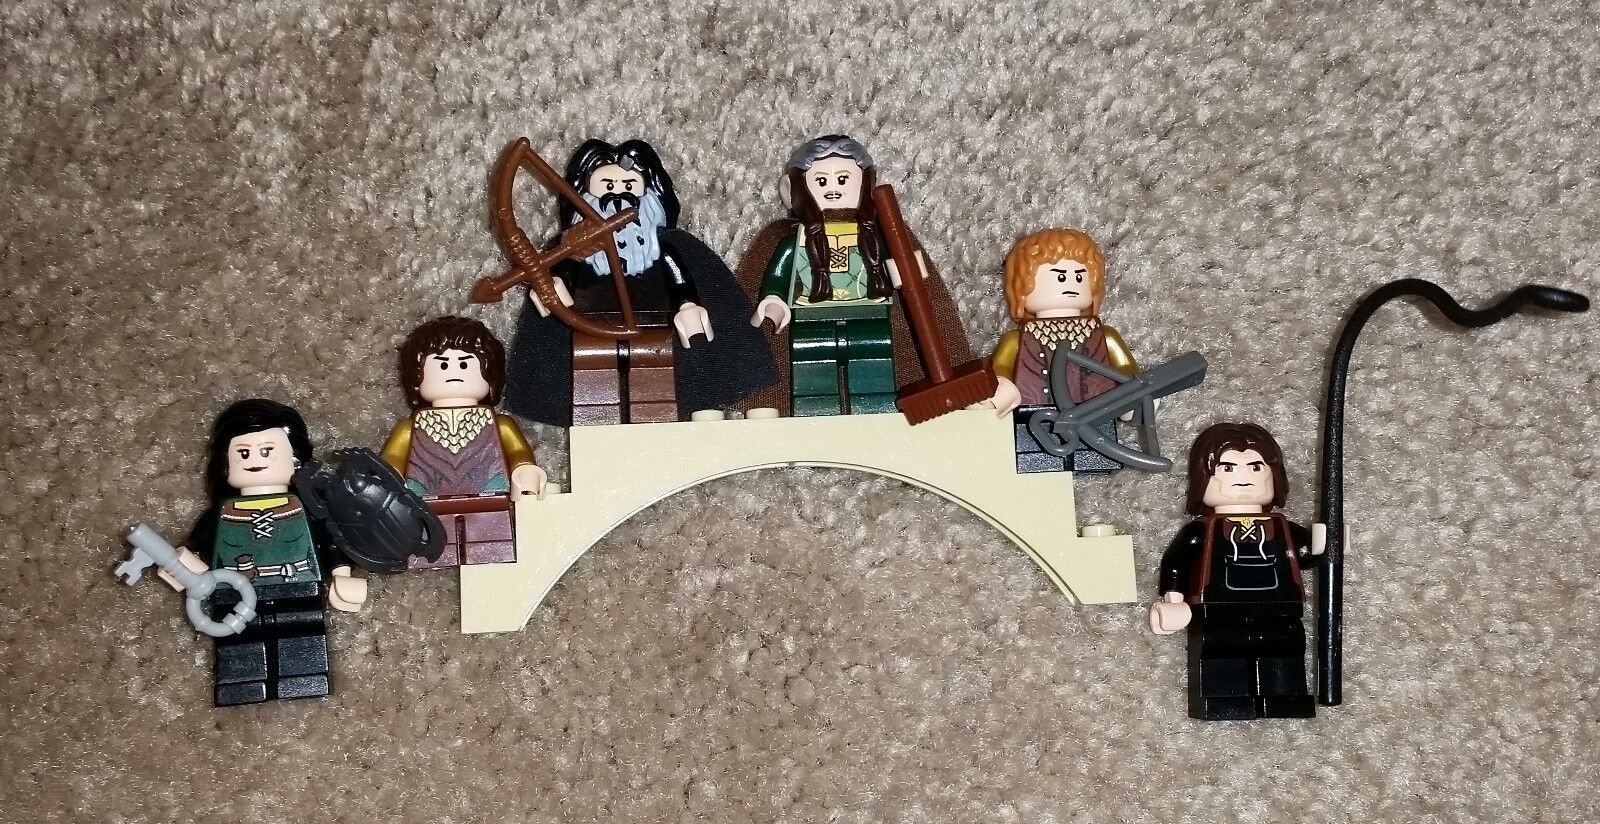 LOTR Hobbit Lord of the Rings Genuine LEGO Lot Minifigures w/ Accessories